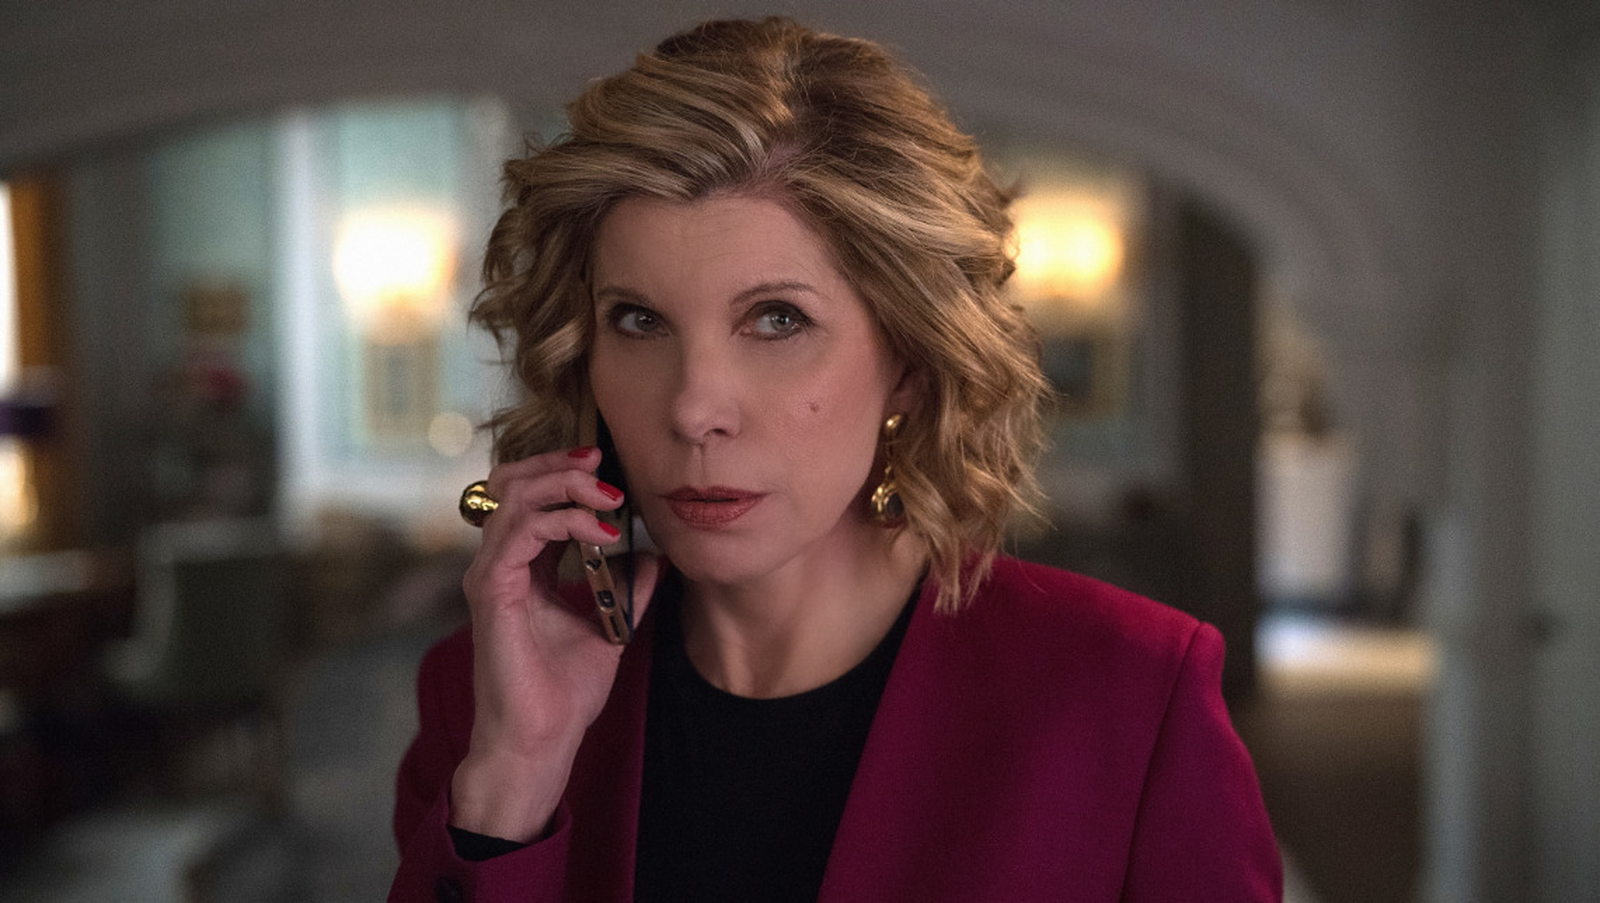 The Good Fight gets renewed for a fifth season